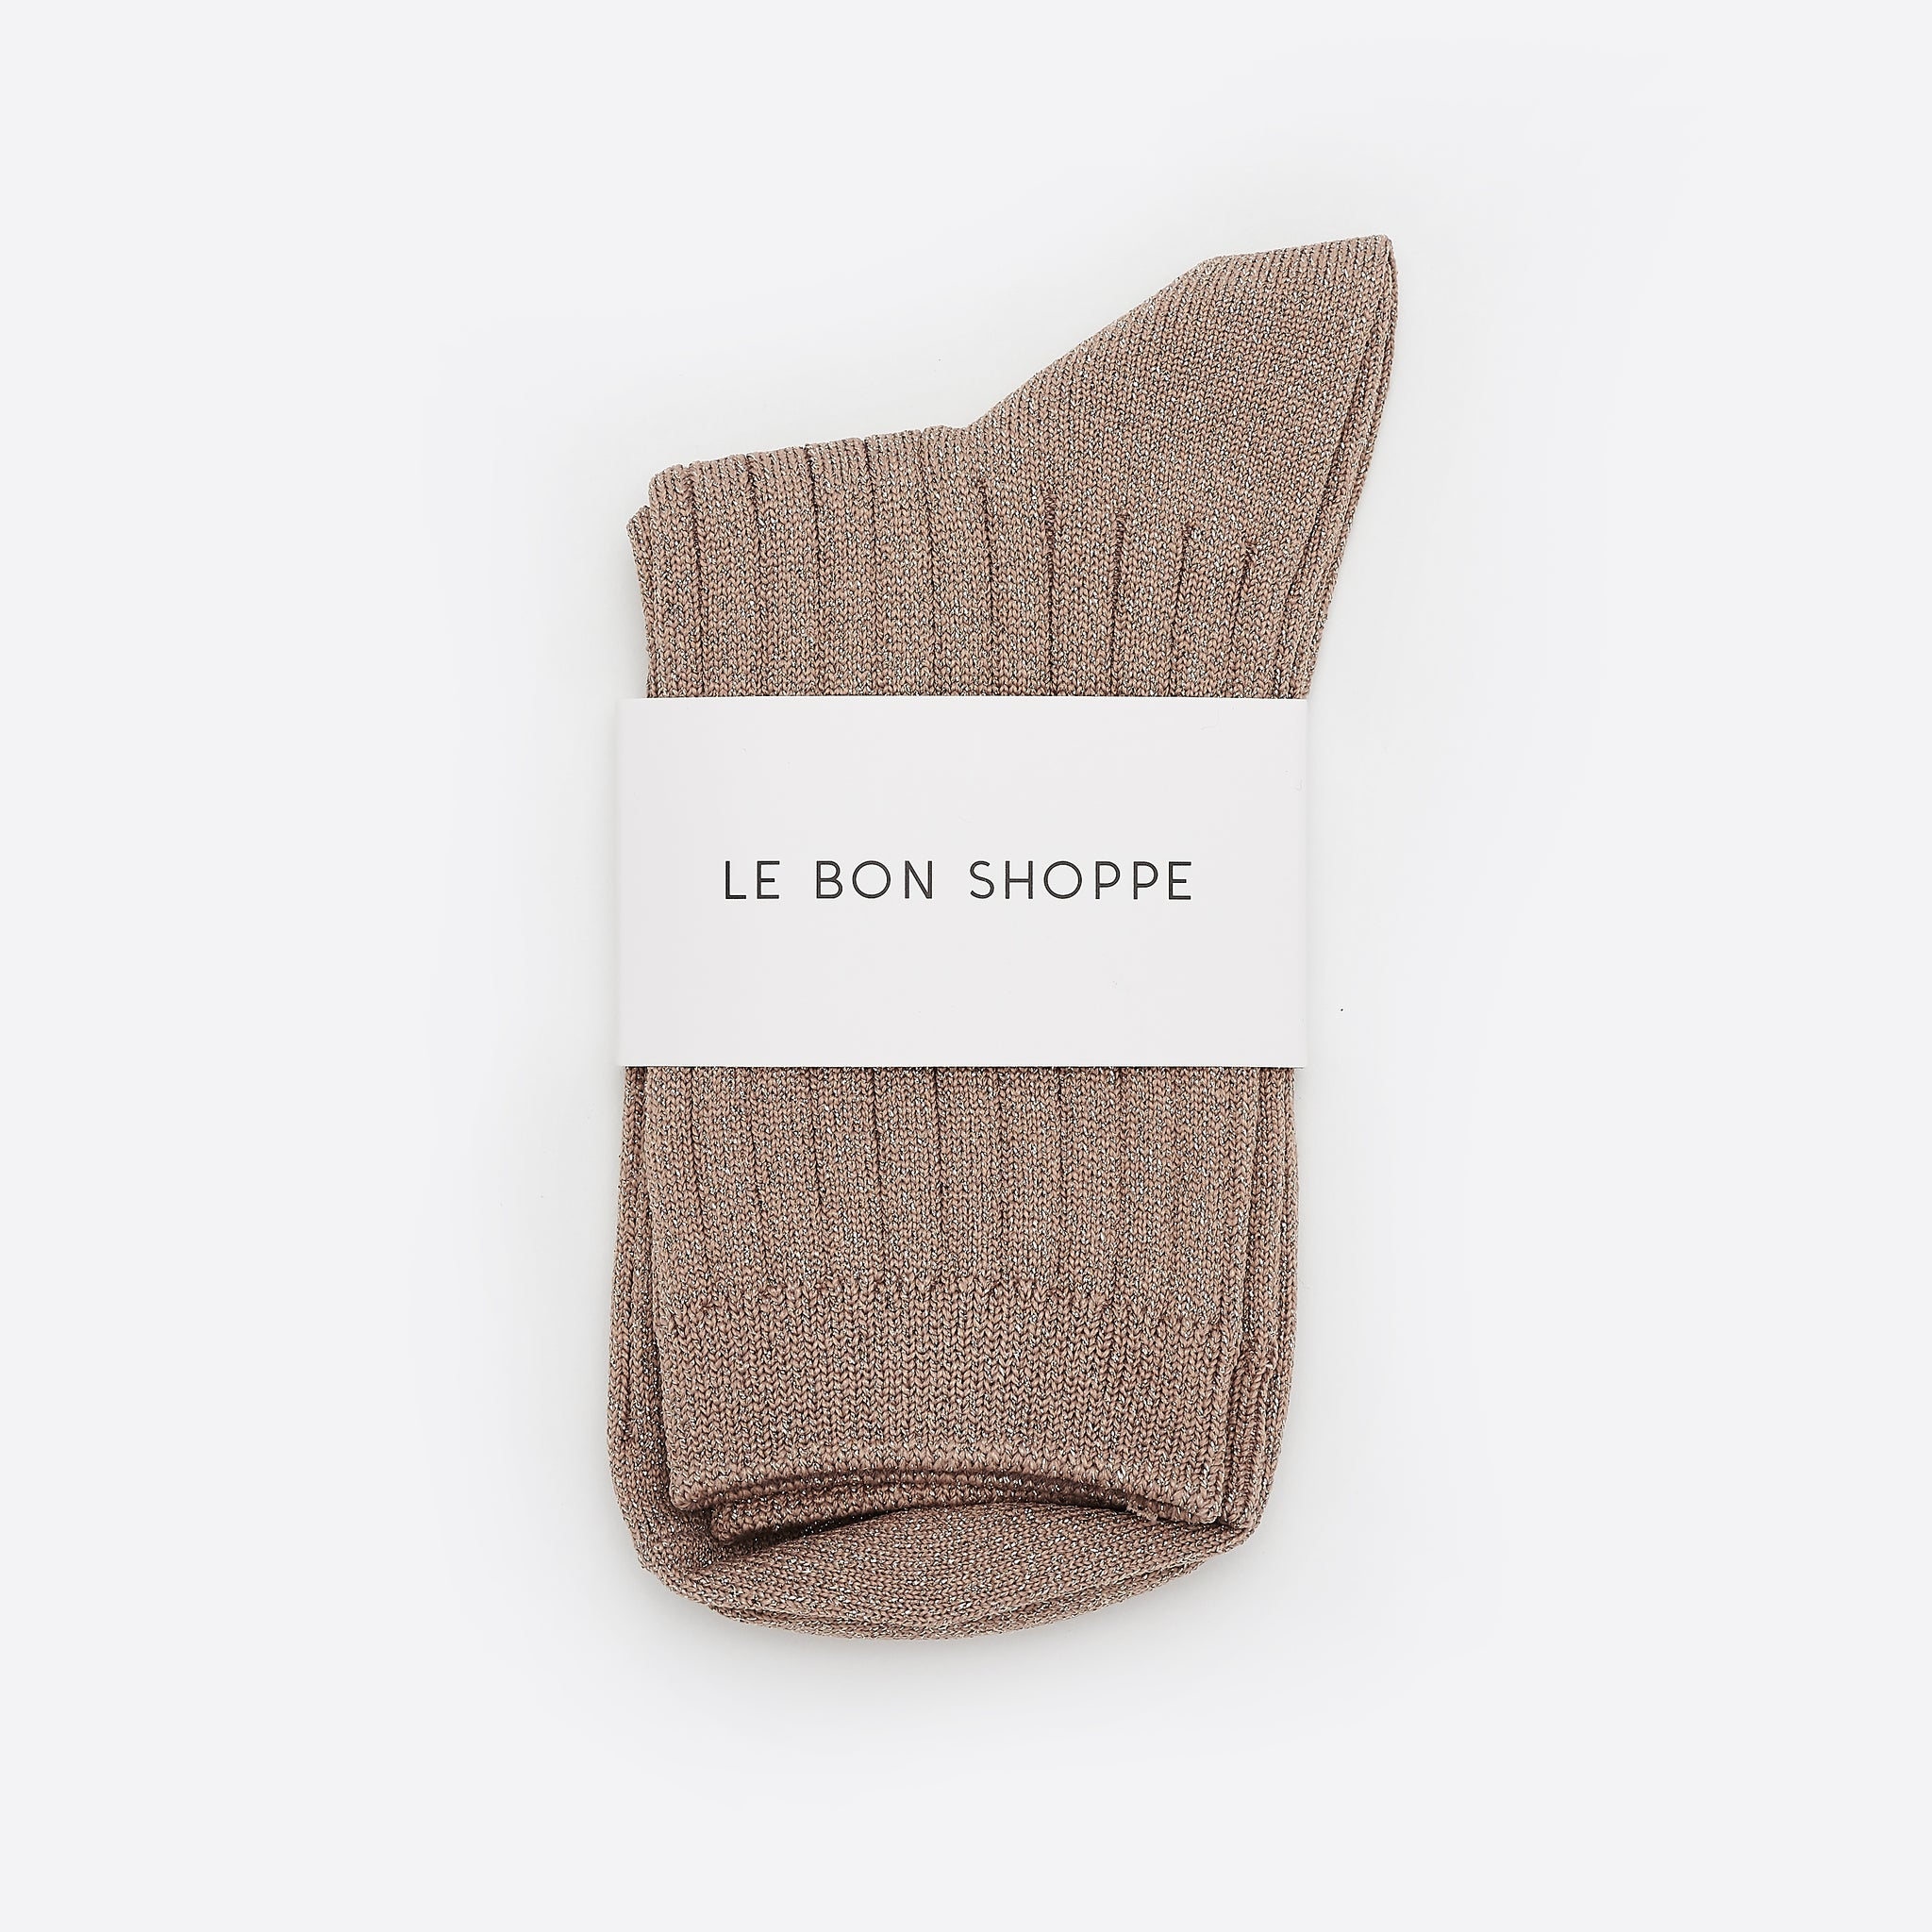 Le Bon Shoppe Her Socks in Glittery Jute